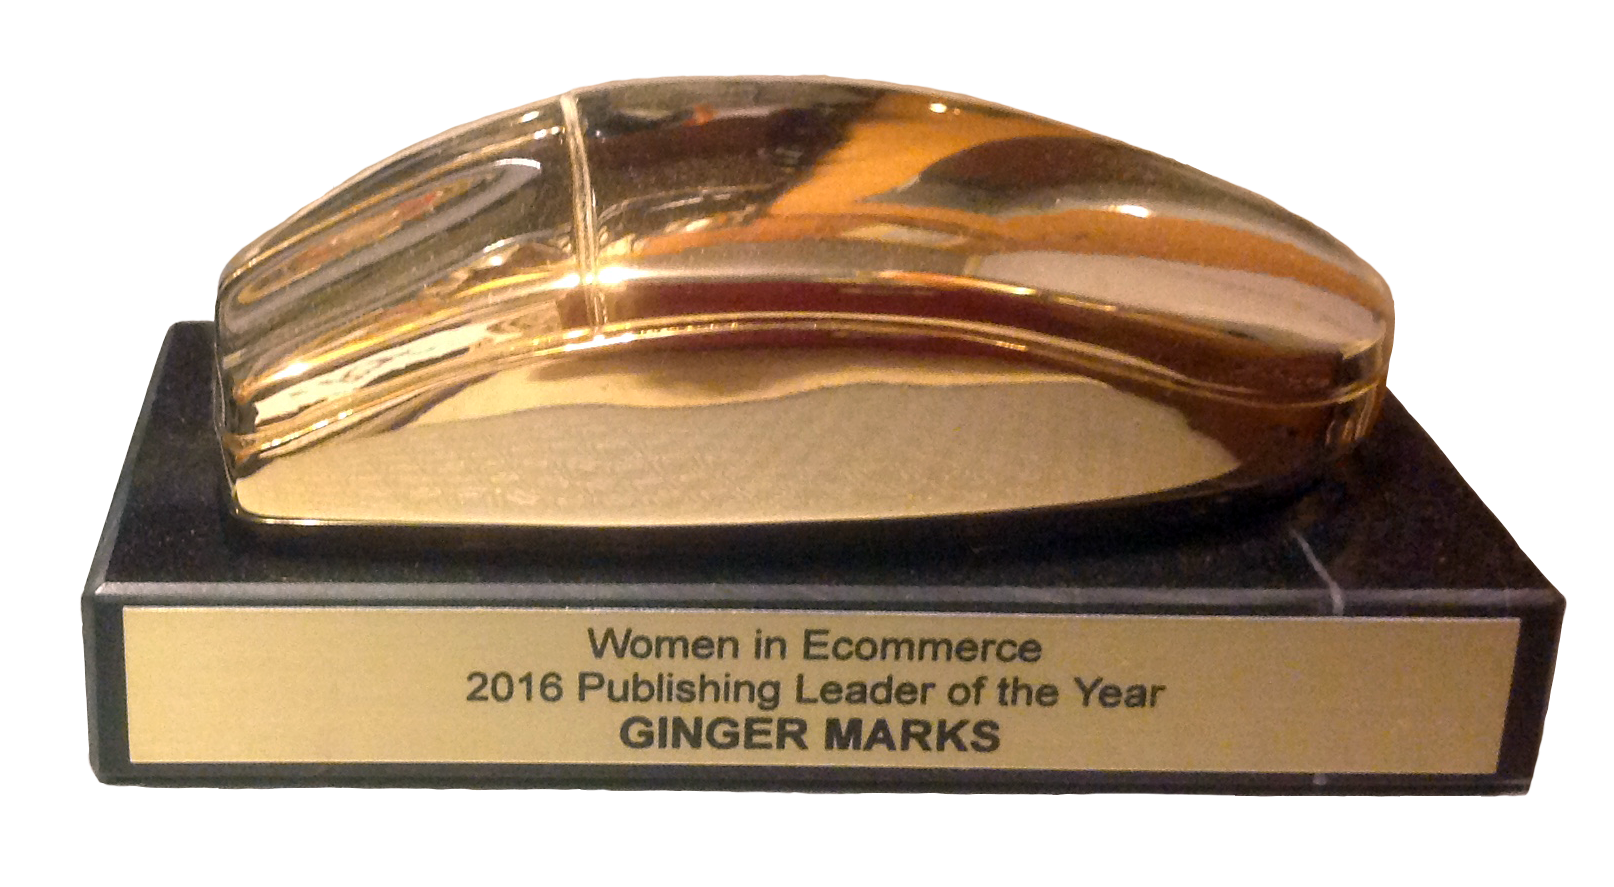 Women in Ecommerce, Publishing Leader of the Year Ginger Marks, 2016 Golden Mouse Award